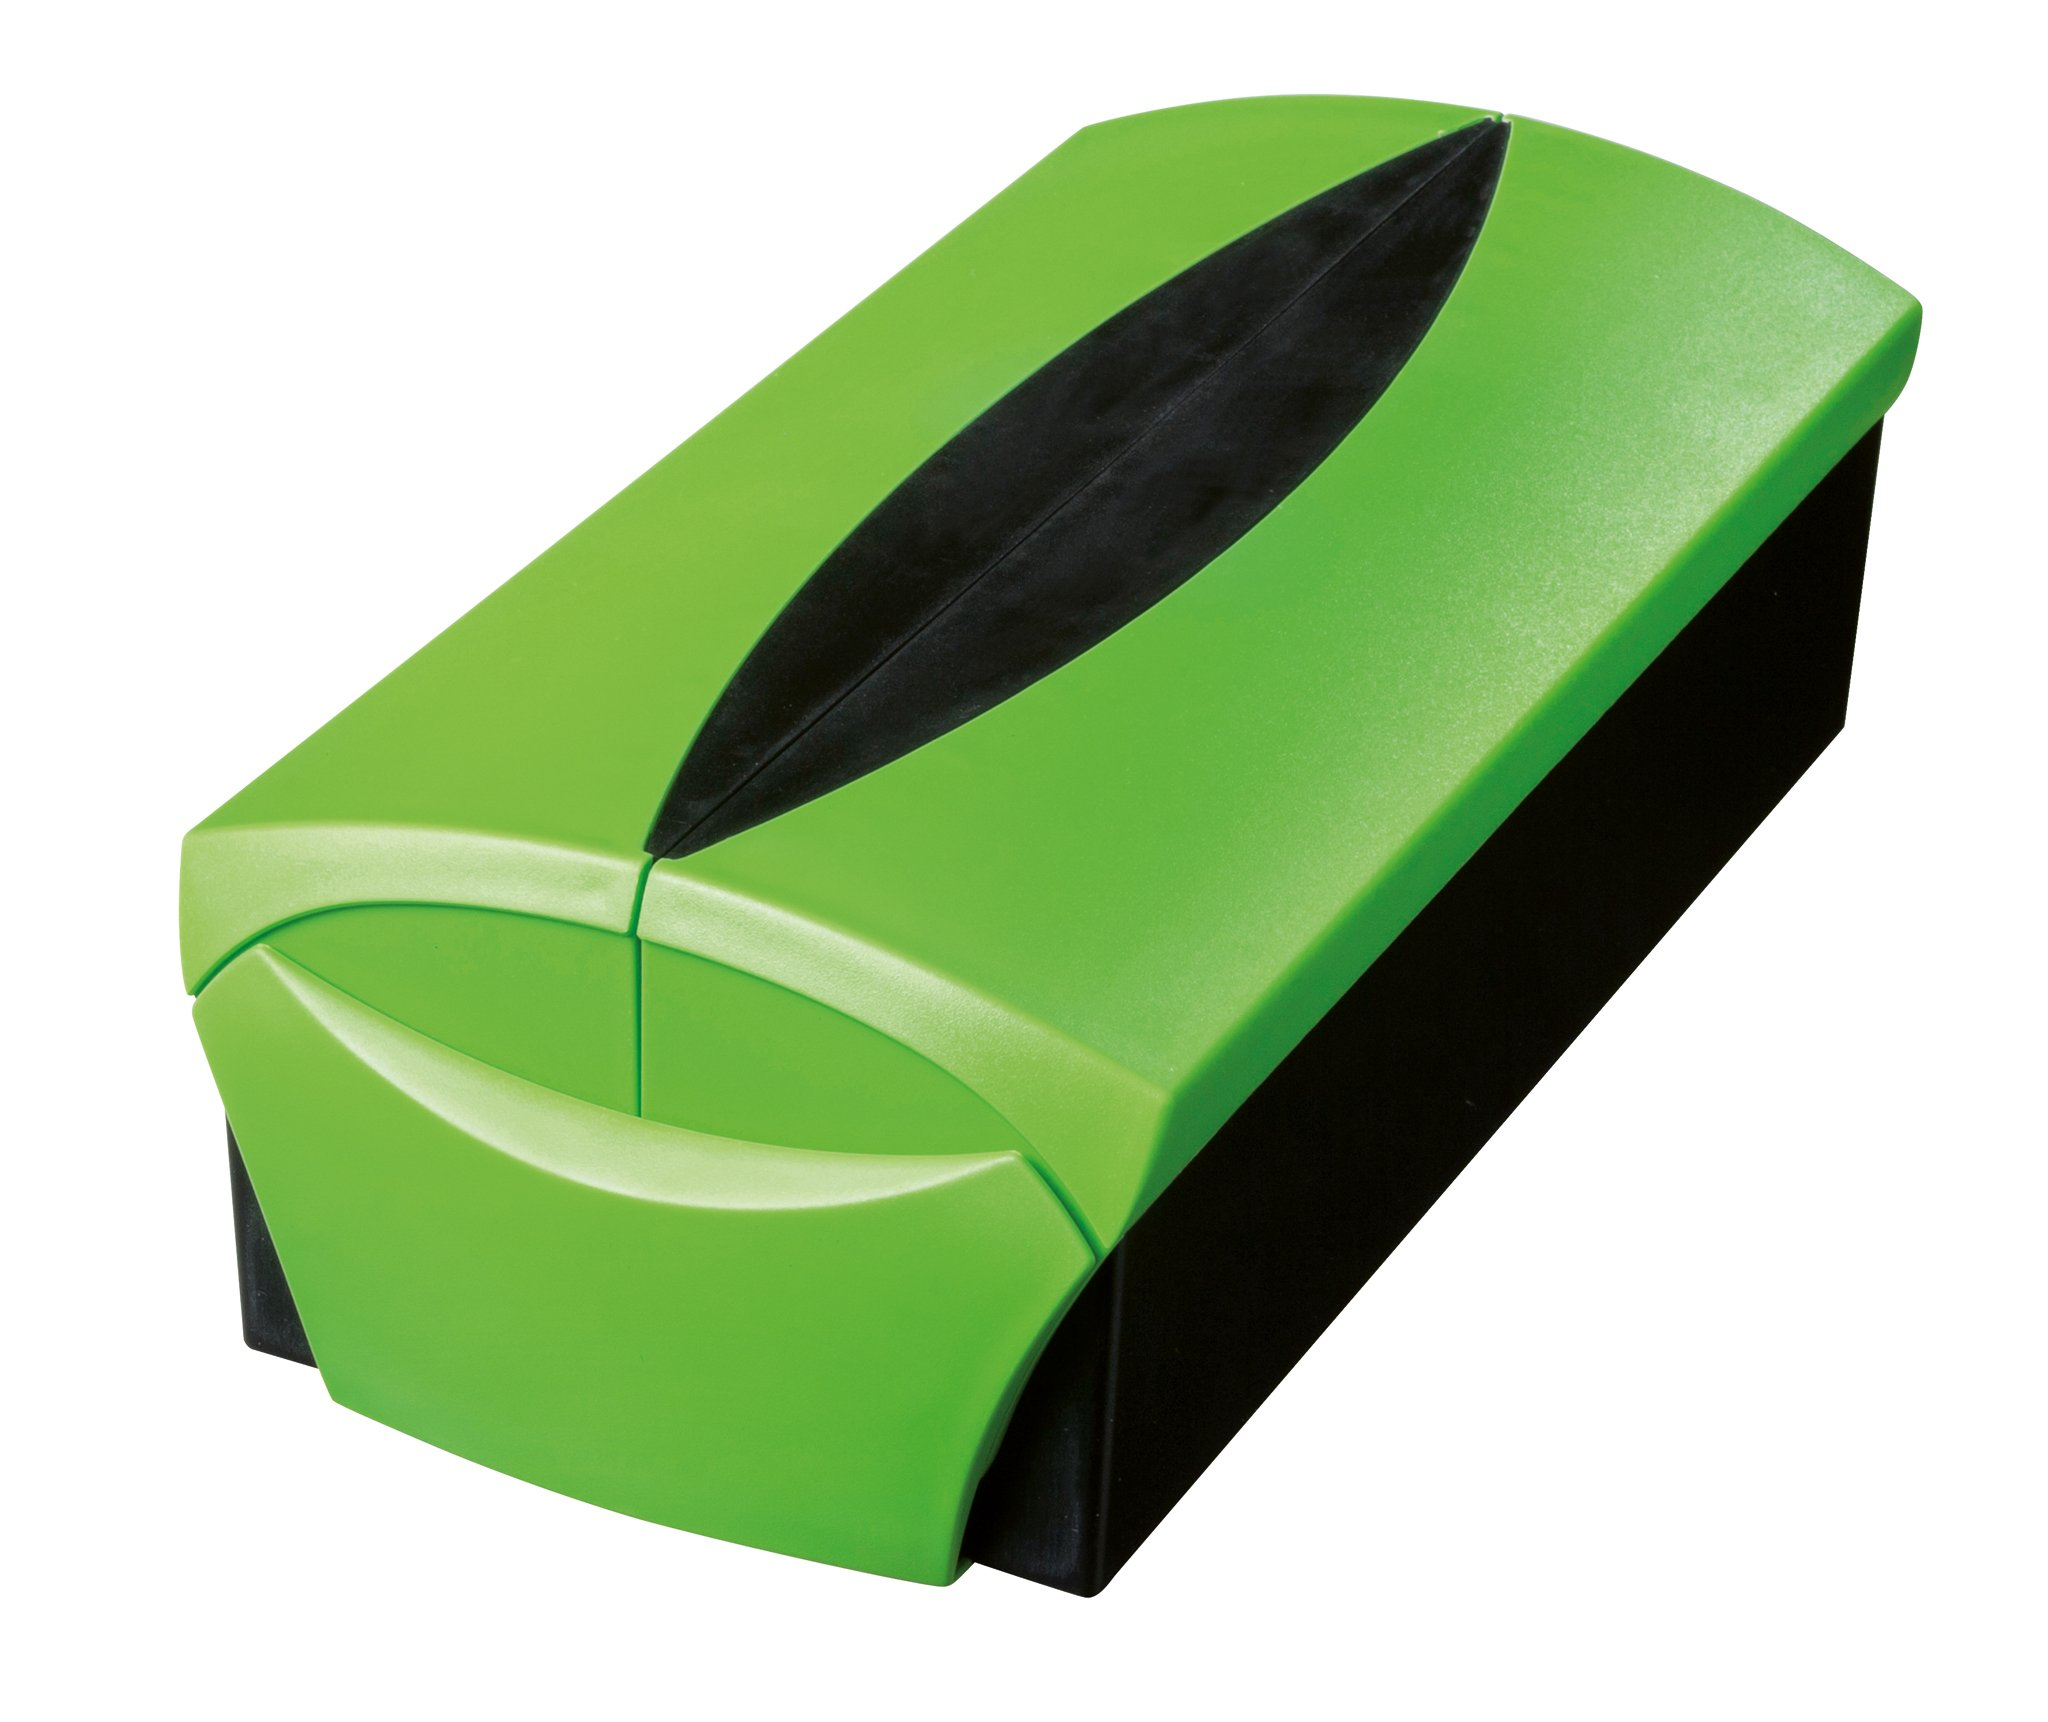 HAN 2000-90, Business Card Box VIP, Professional Box for 500 Business Cards. Finish, Supplied with Go-VIP case, tabs and Adjustable Index Card Support, New Colour Green-Black by HAN